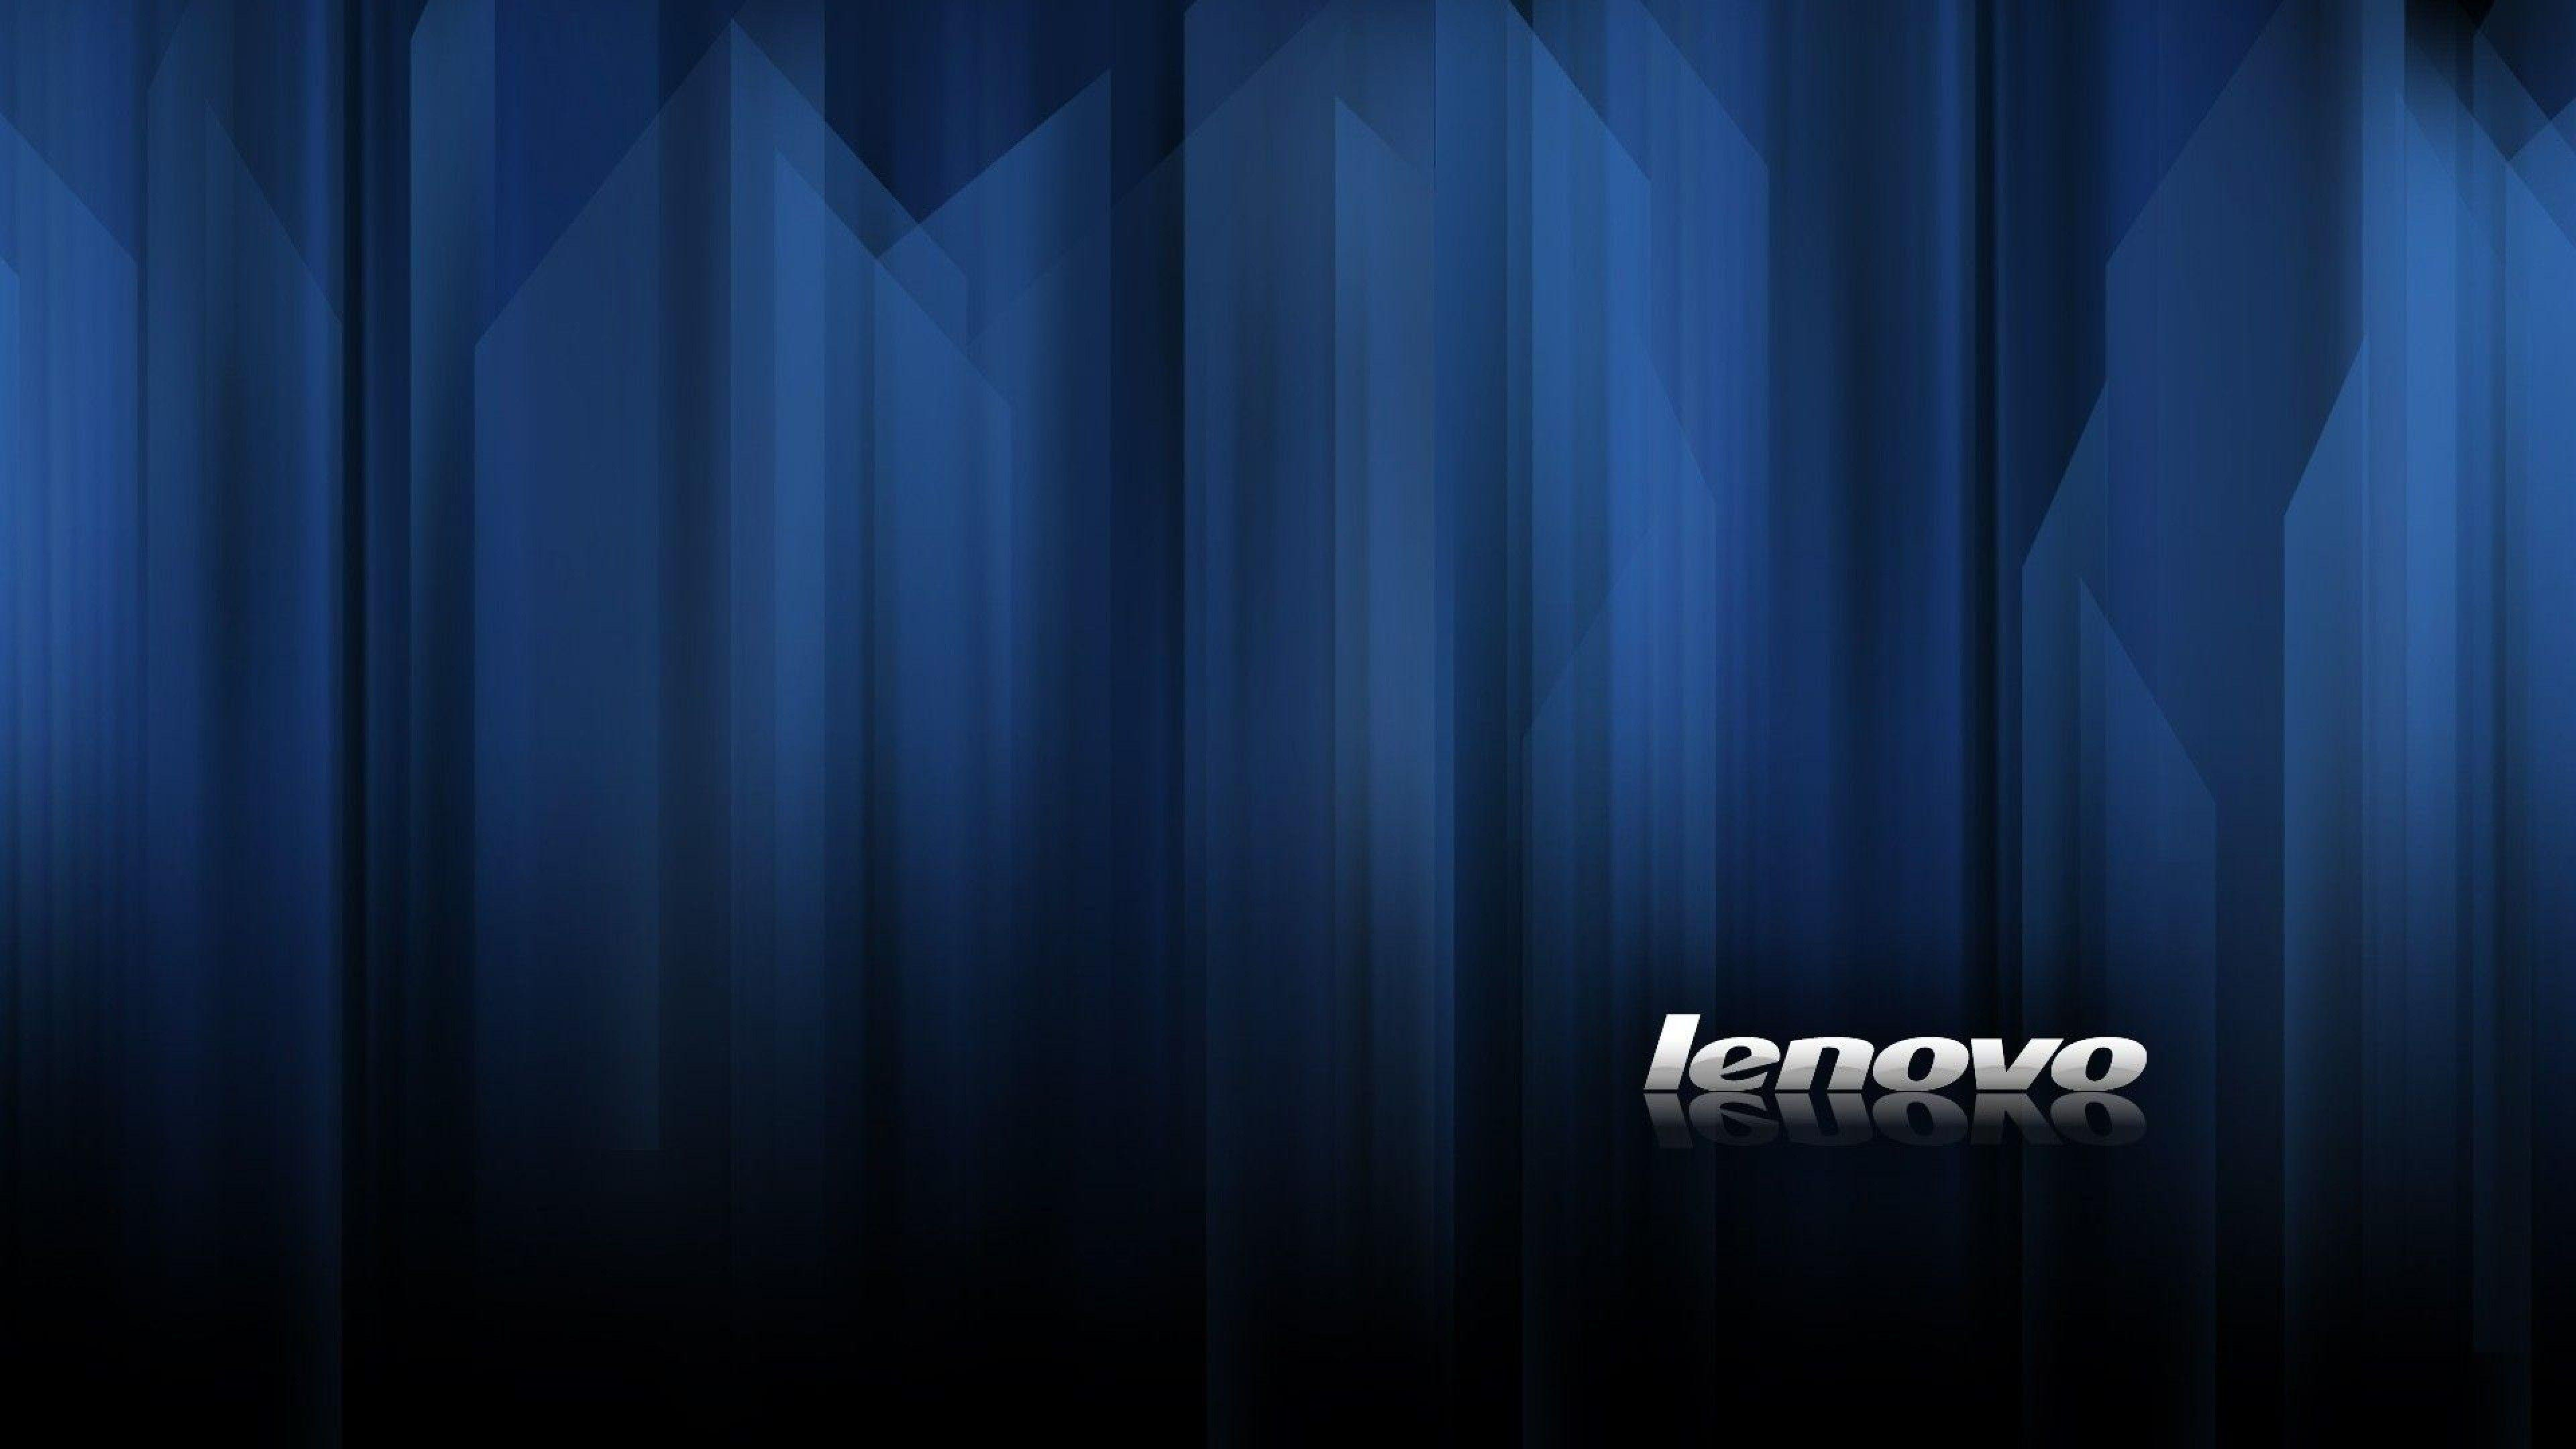 space lenovo wallpapers wallpaper cave